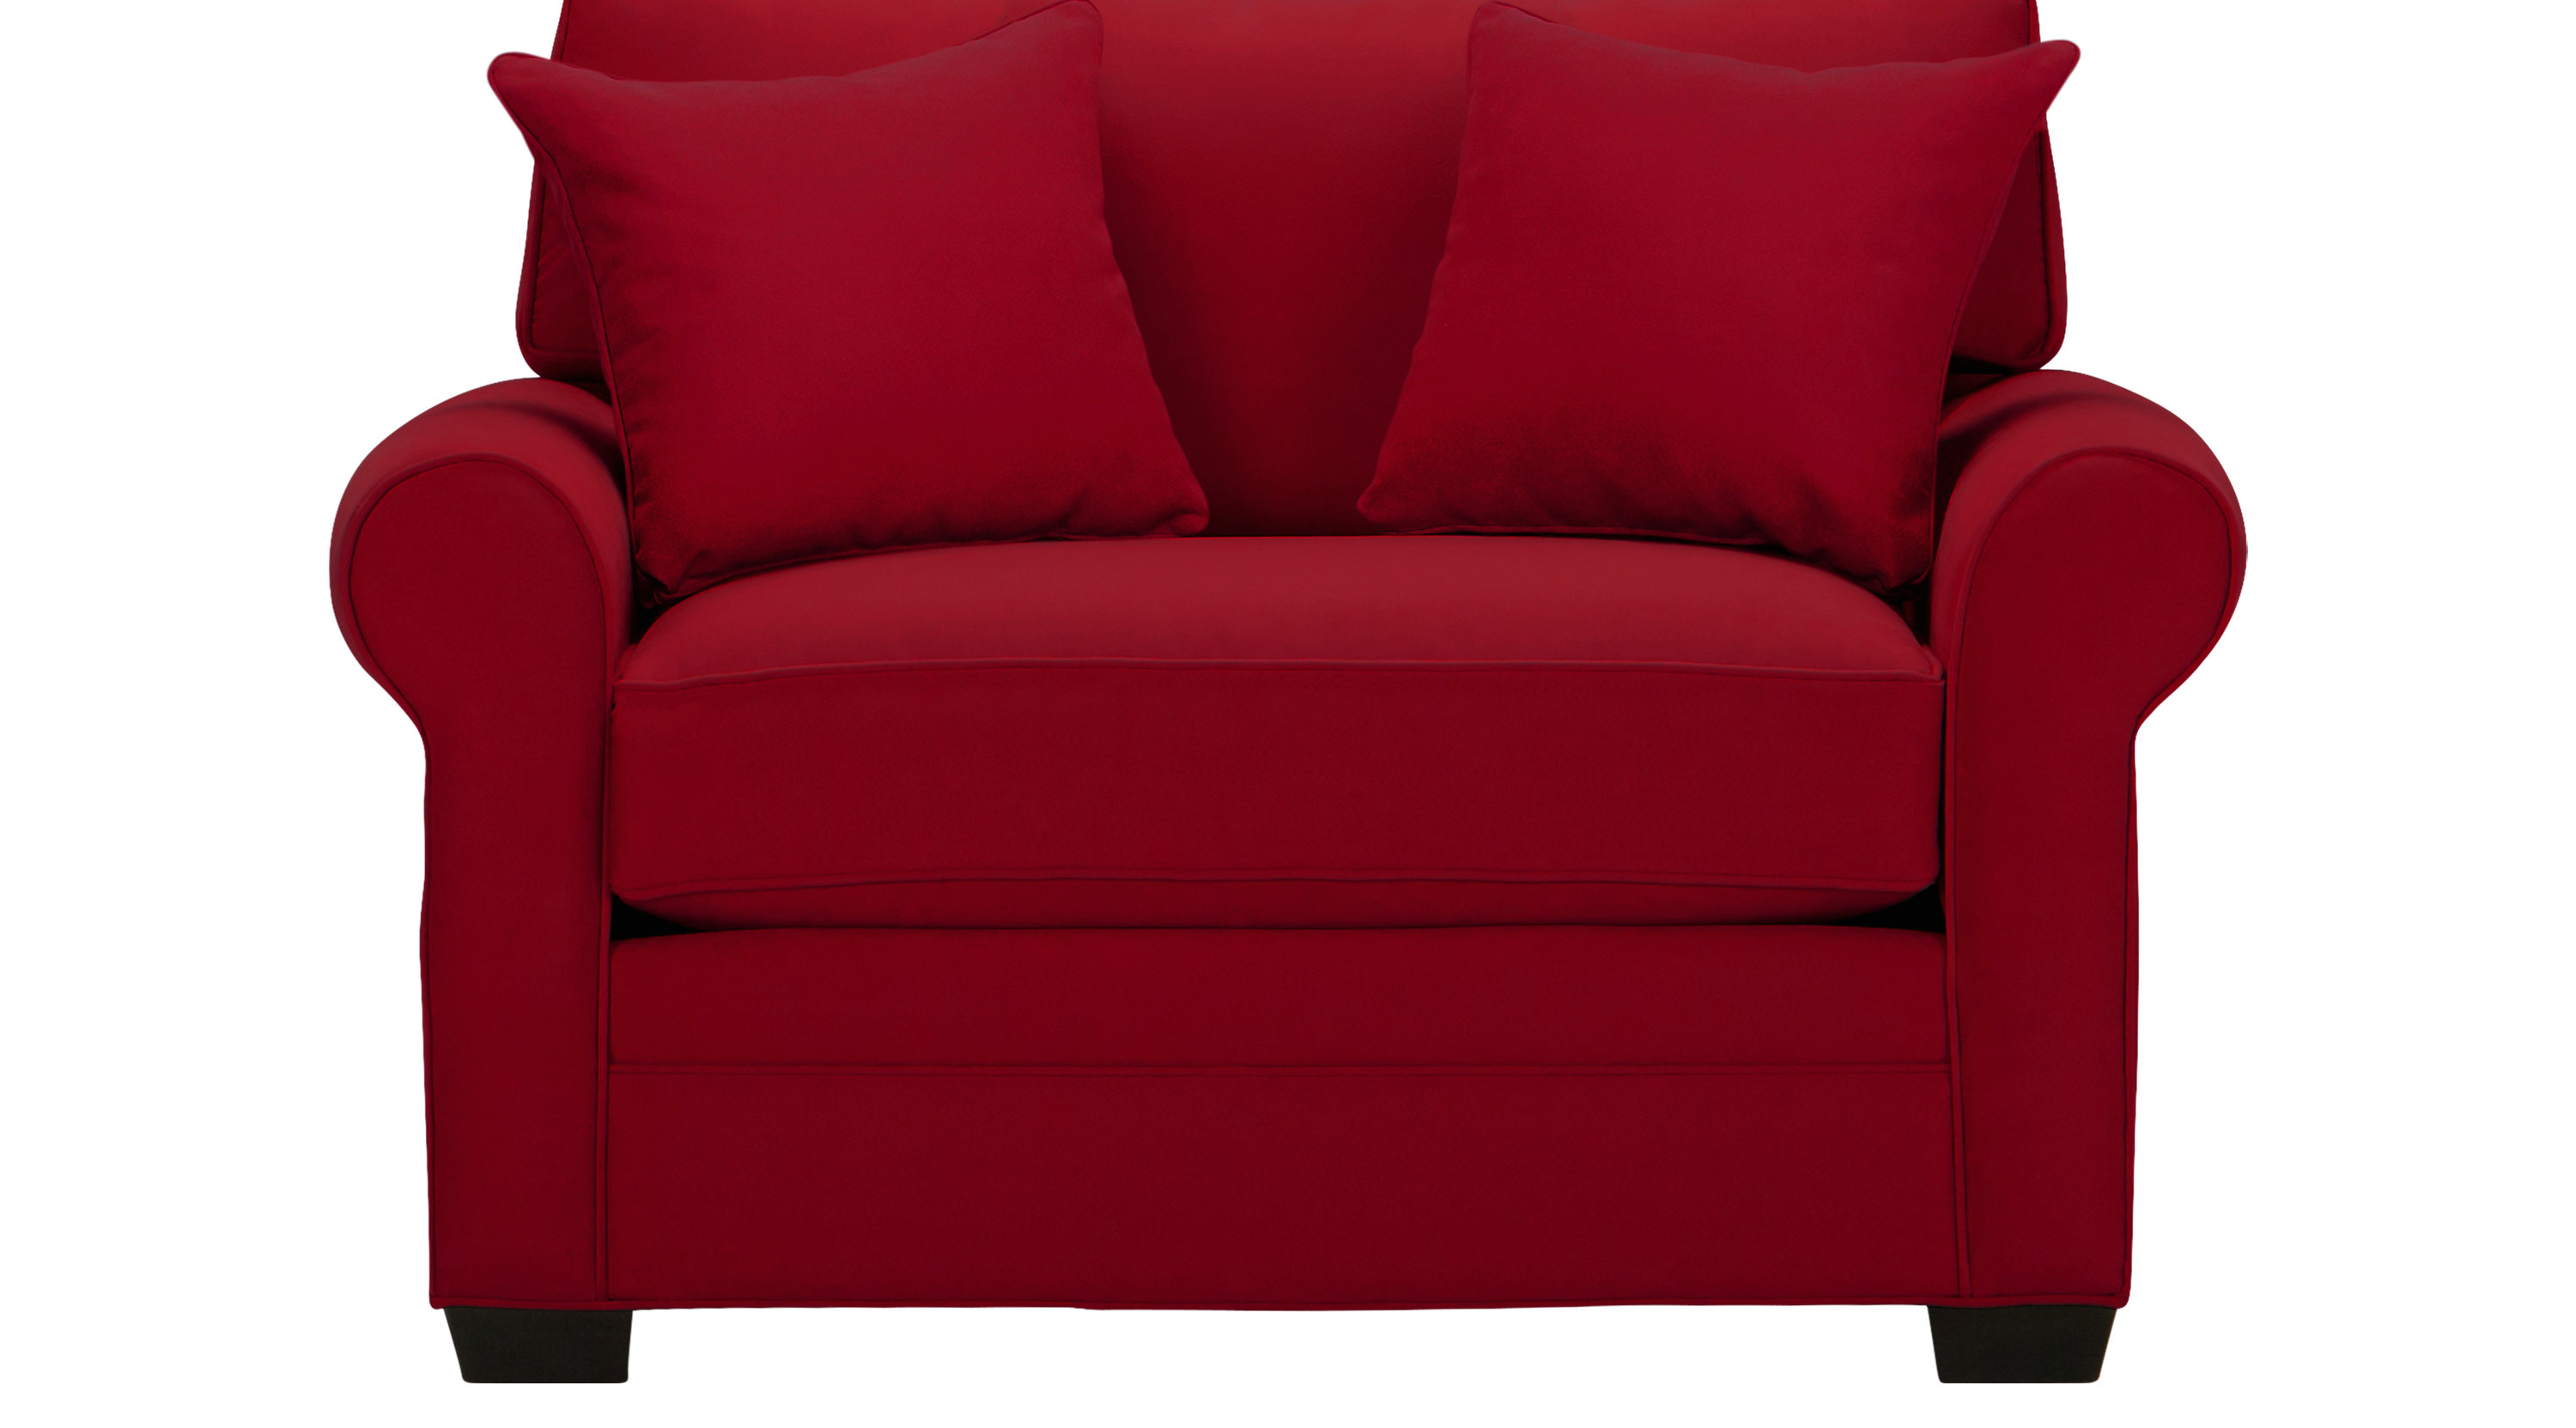 $555.00 - Bellingham Cardinal (red) Chair - Oversized - Contemporary